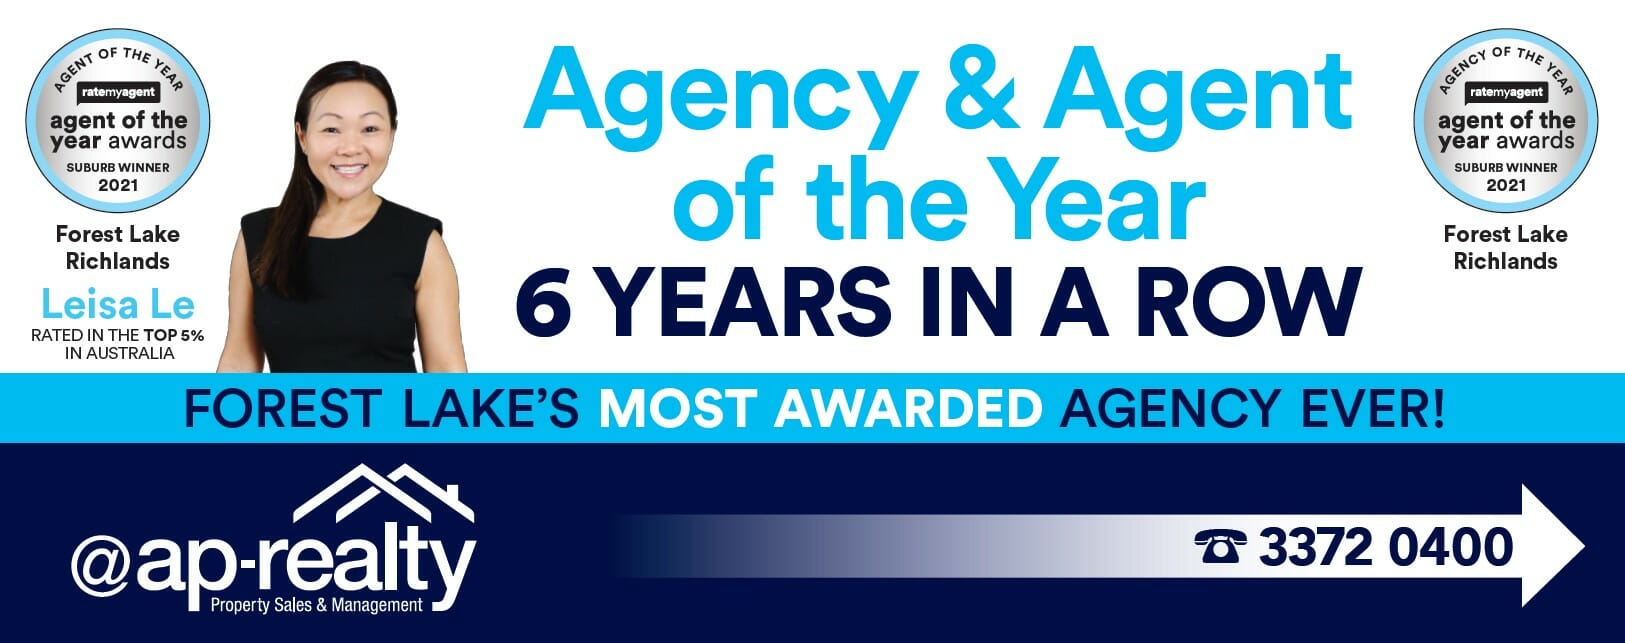 Agency and agent of the year, six years in a row. Forest Lake's most awarded agency ever. Agent Leisa Le is rated in th etop 5% in Australia.